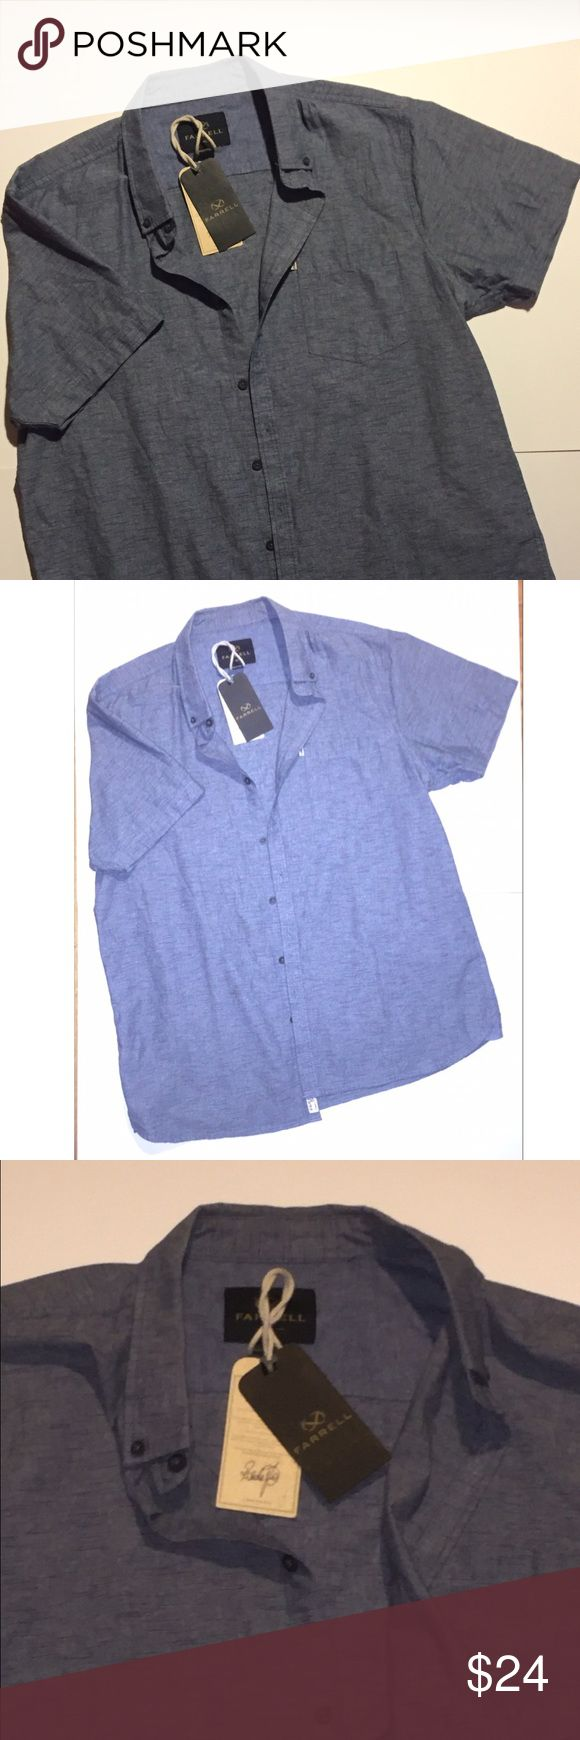 NWT Mens Short Sleeve Denim Button Down Shirt Mens short sleeve Denim style shirt. Has one pocket on the front and buttons down. Brand new and never used with tags. NWT Super stylish and on trend. Size XL, casual style. ✨✨✨ Bundle for excellent savings and free gift! ✨✨✨ Shirts Casual Button Down Shirts